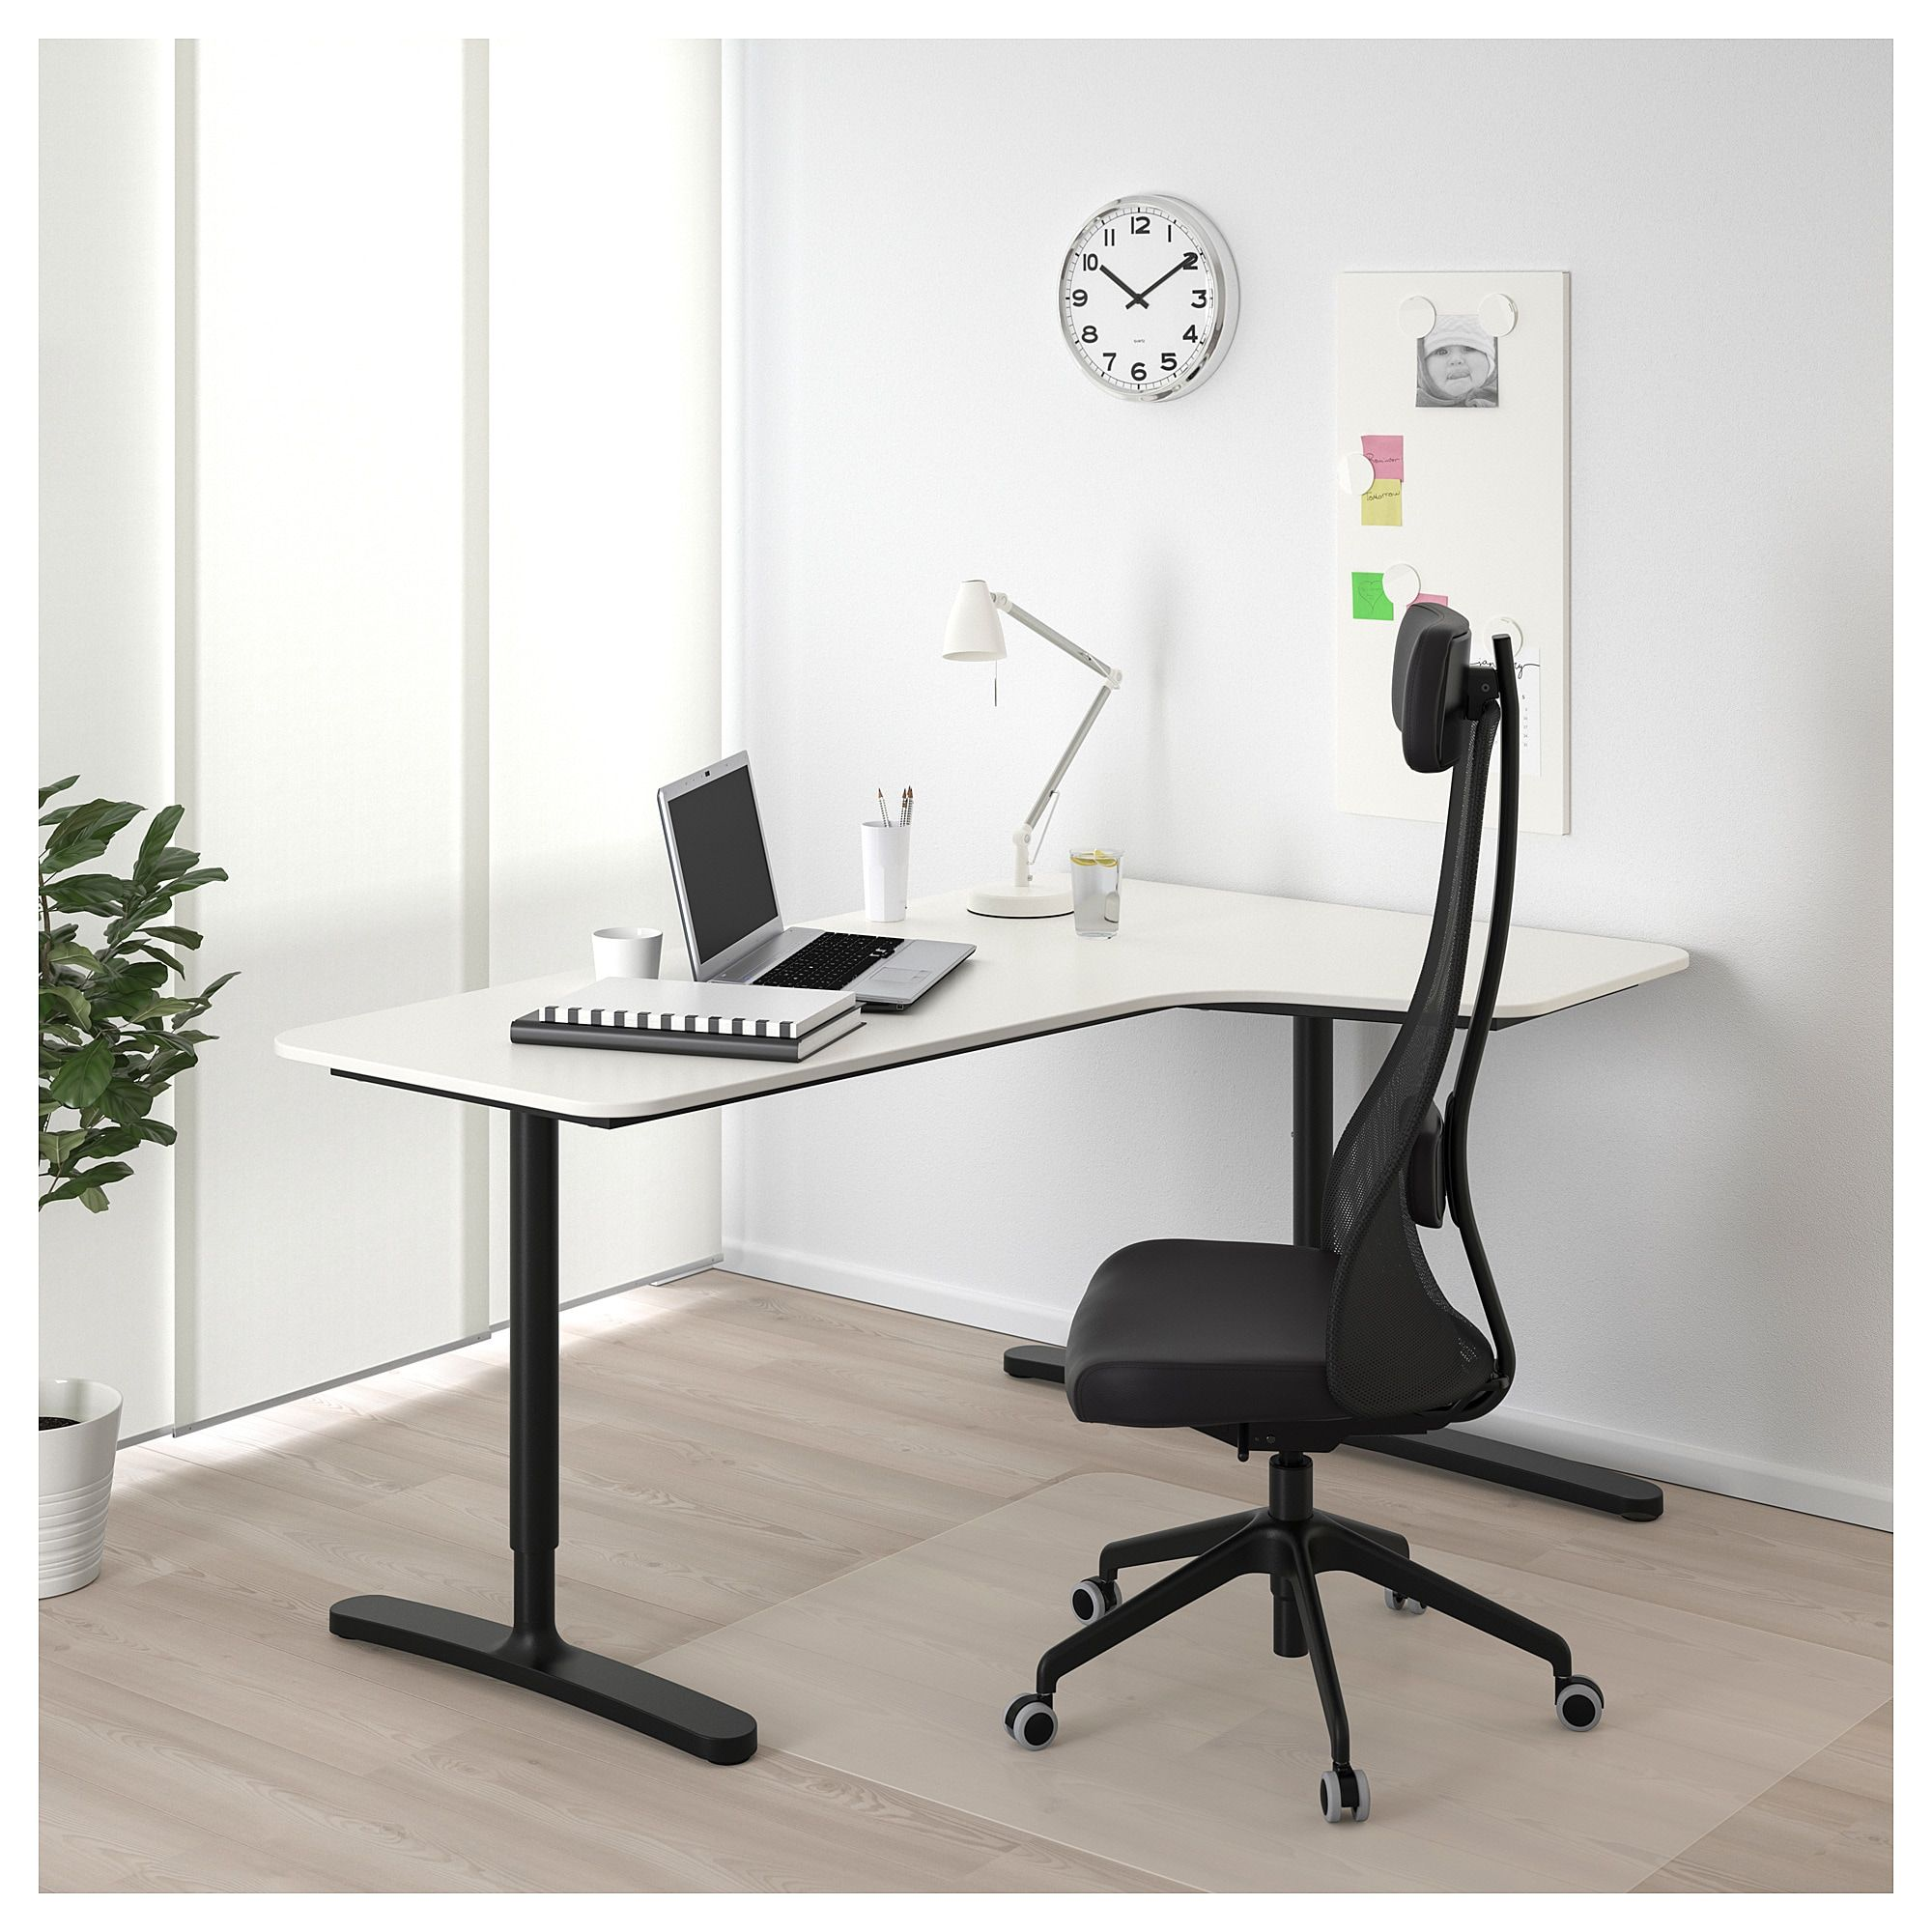 Bekant Corner Desk Right White Black Ikea In 2020 Ikea Bekant Ikea Bekant Desk Ikea